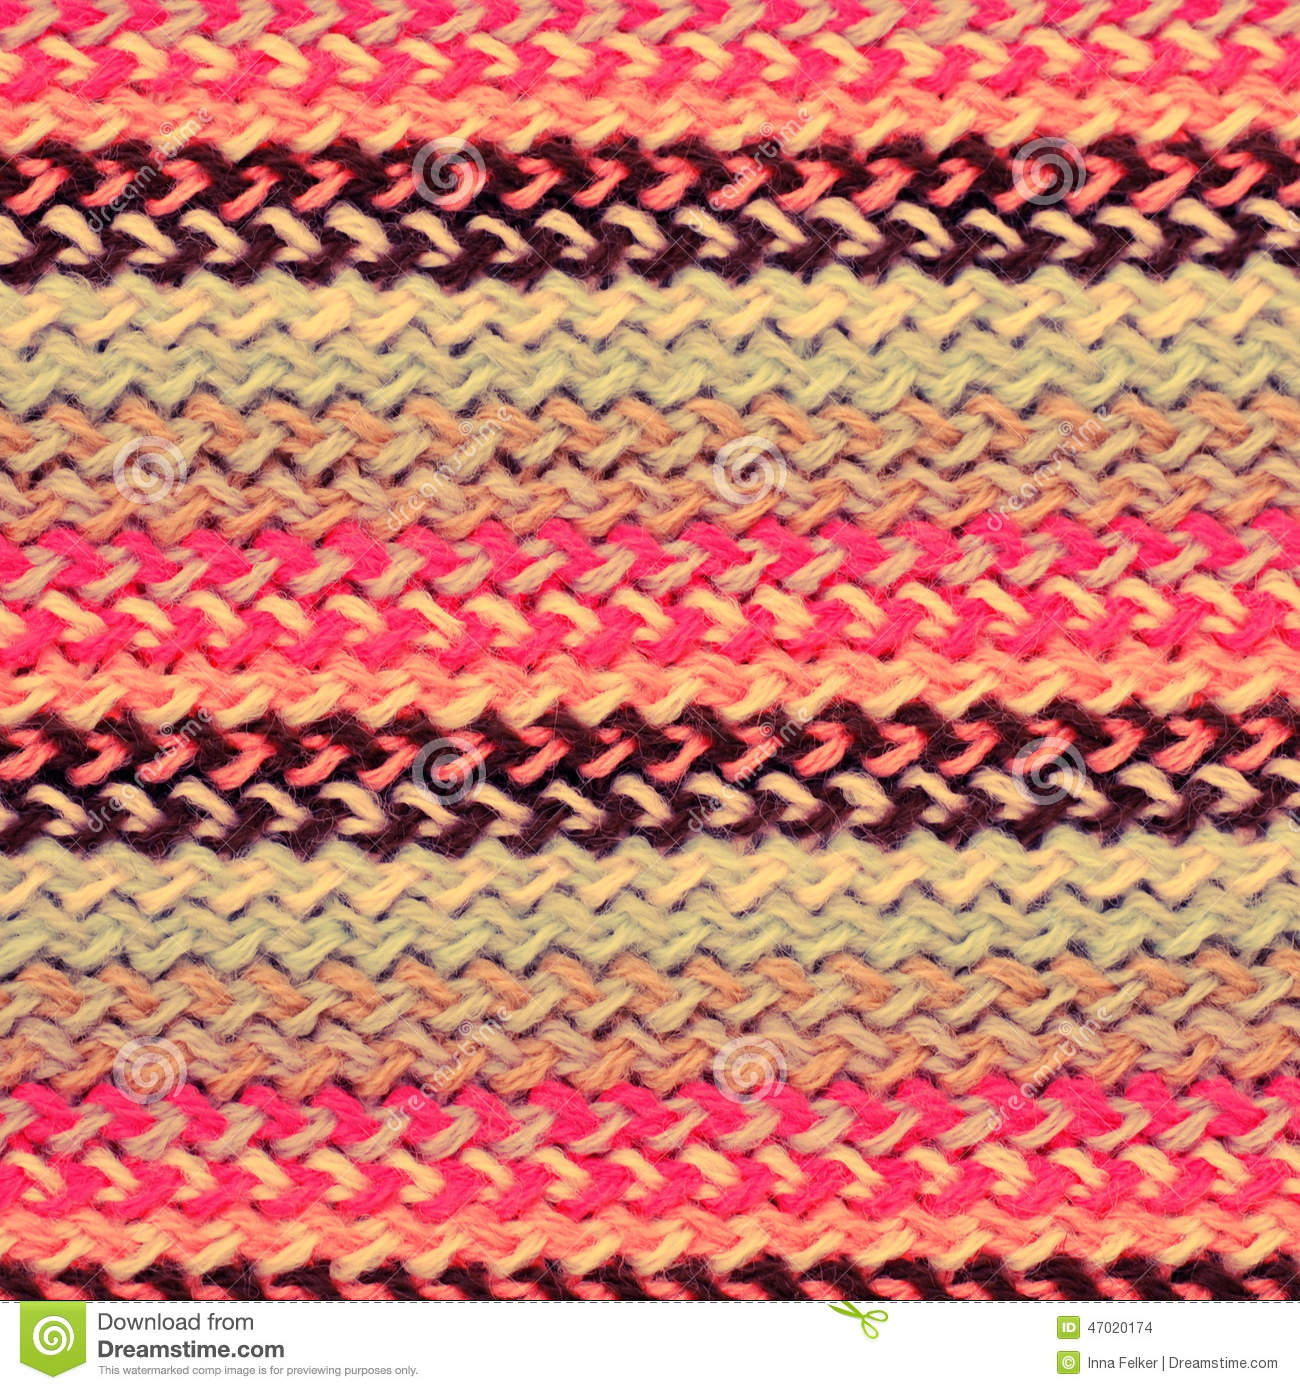 Multicolored Knitting Horizontal Striped Background Stock Photo ...